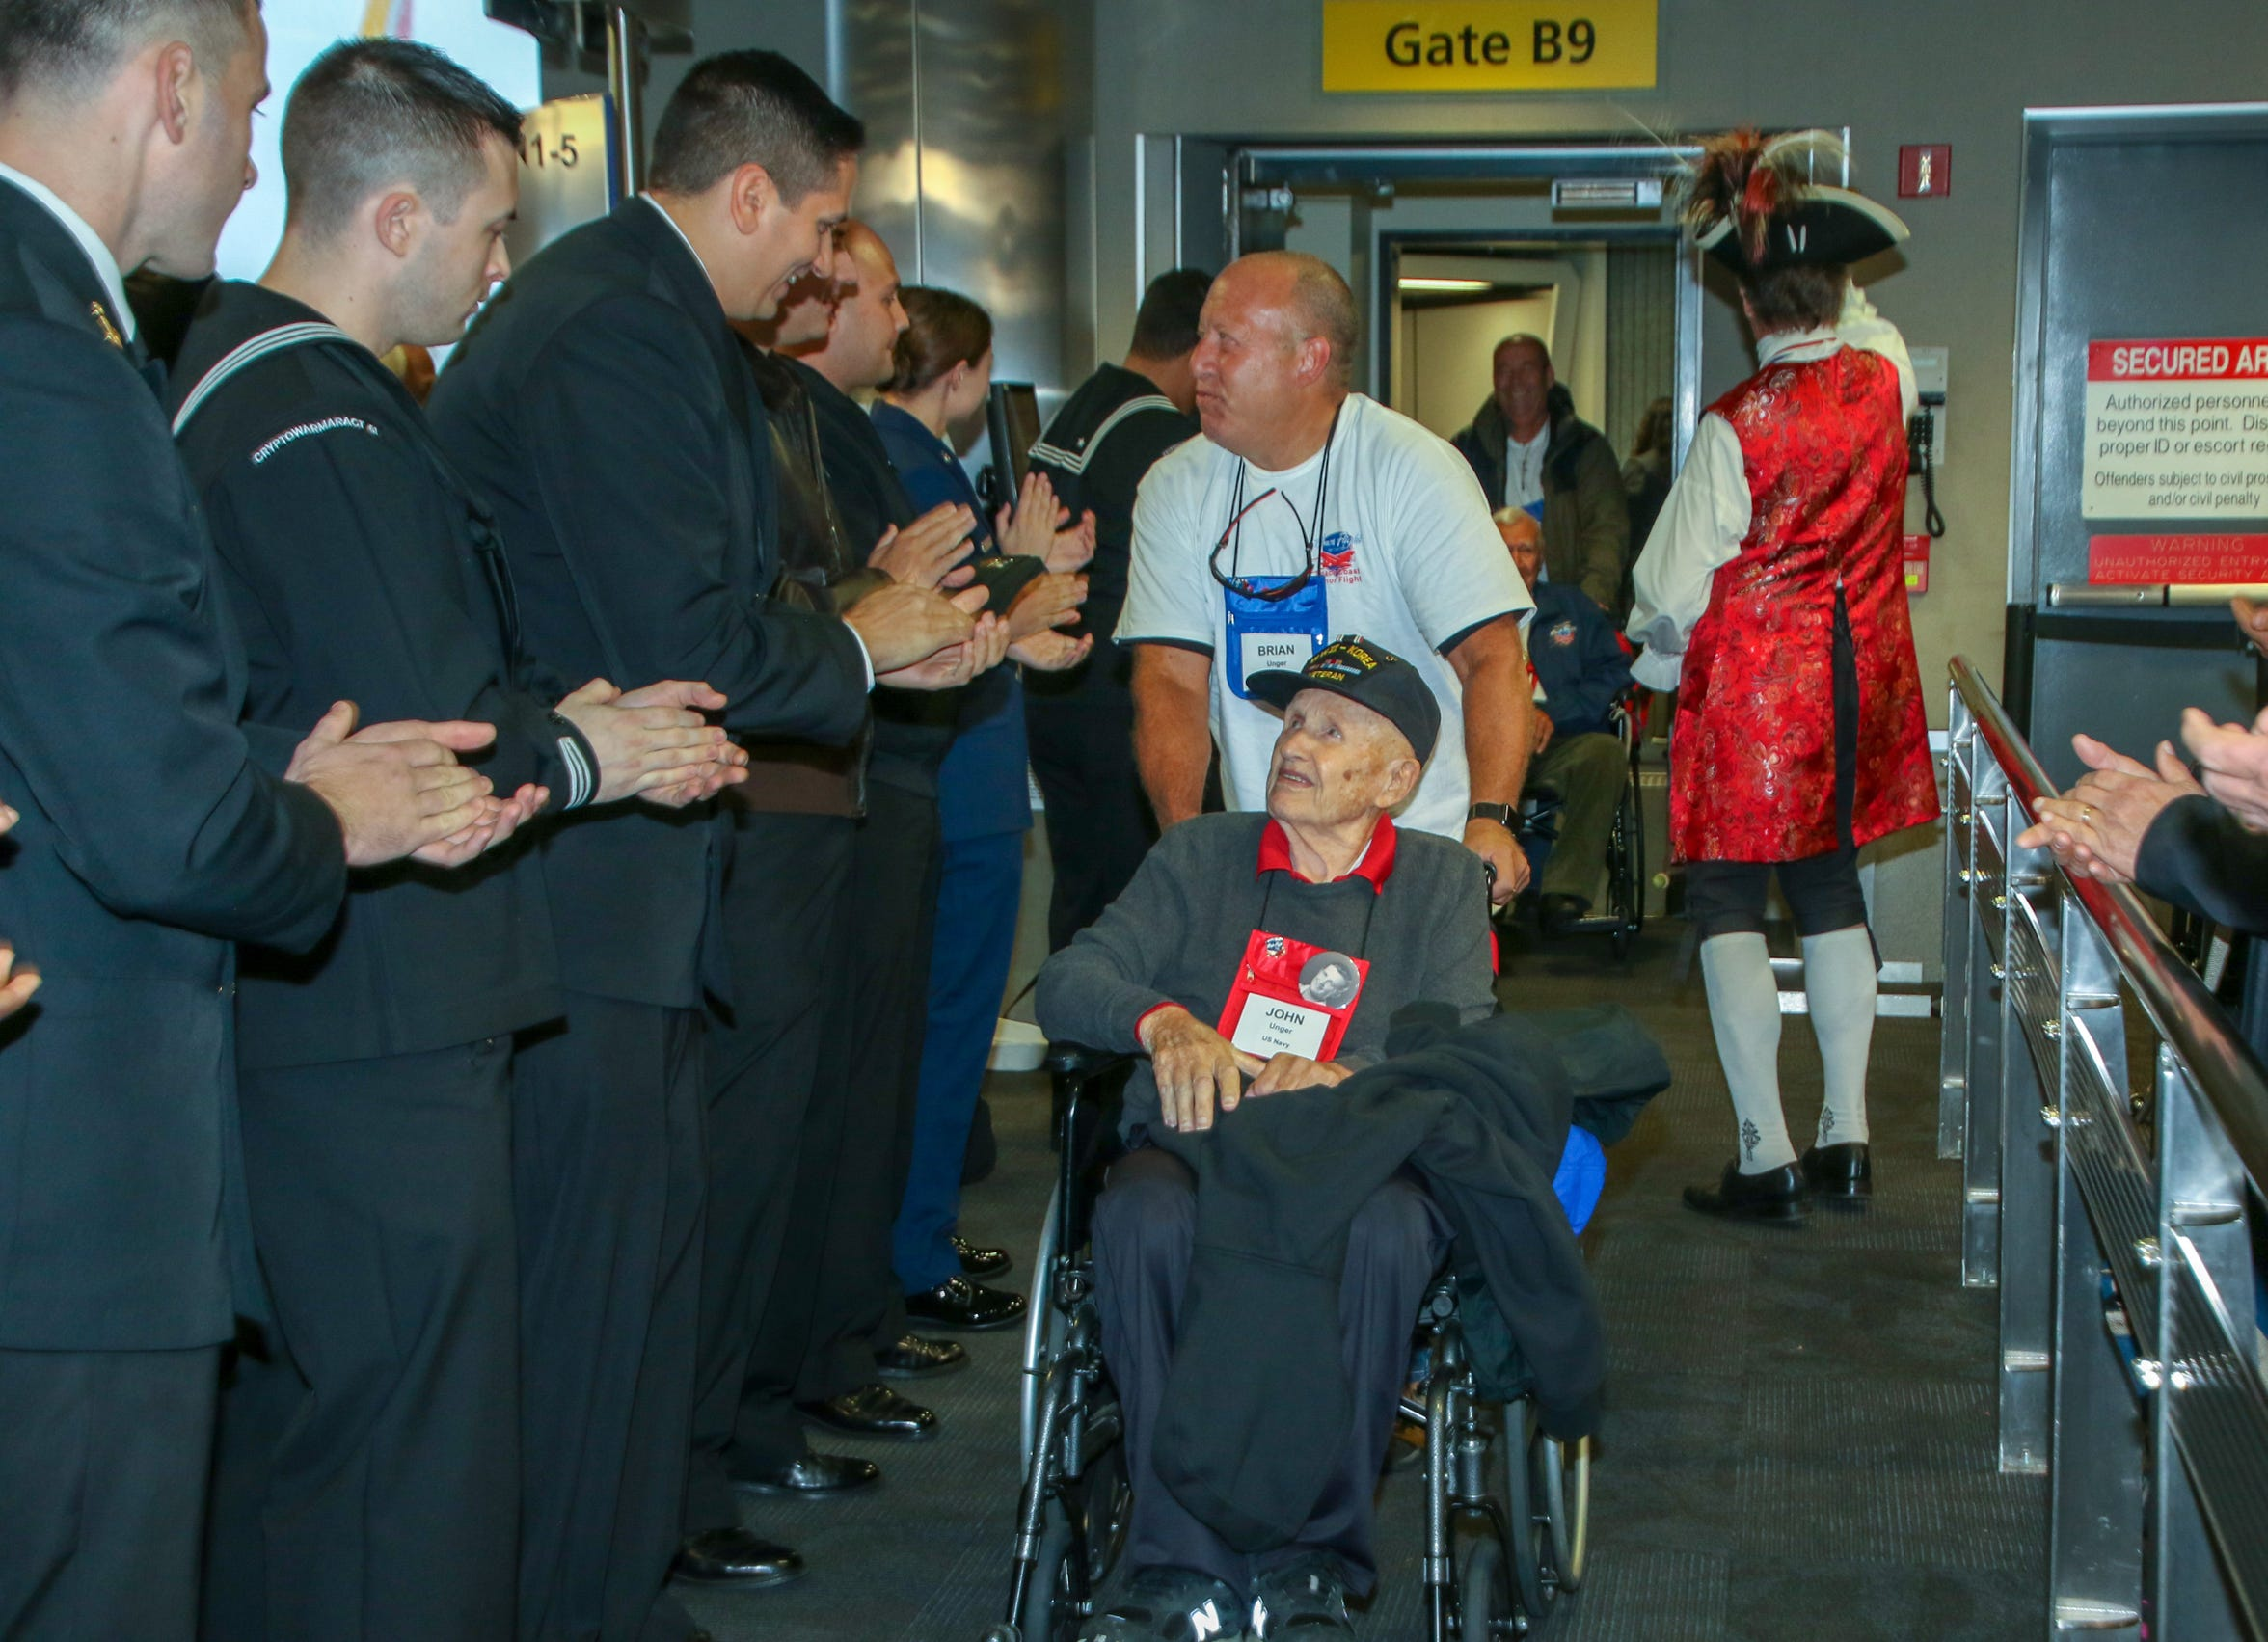 World War II prisoner of war John Unger, 98, is greeted by well-wishers at Baltimore/Washington International Airport during the Oct. 27 Space Coast Honor Flight.